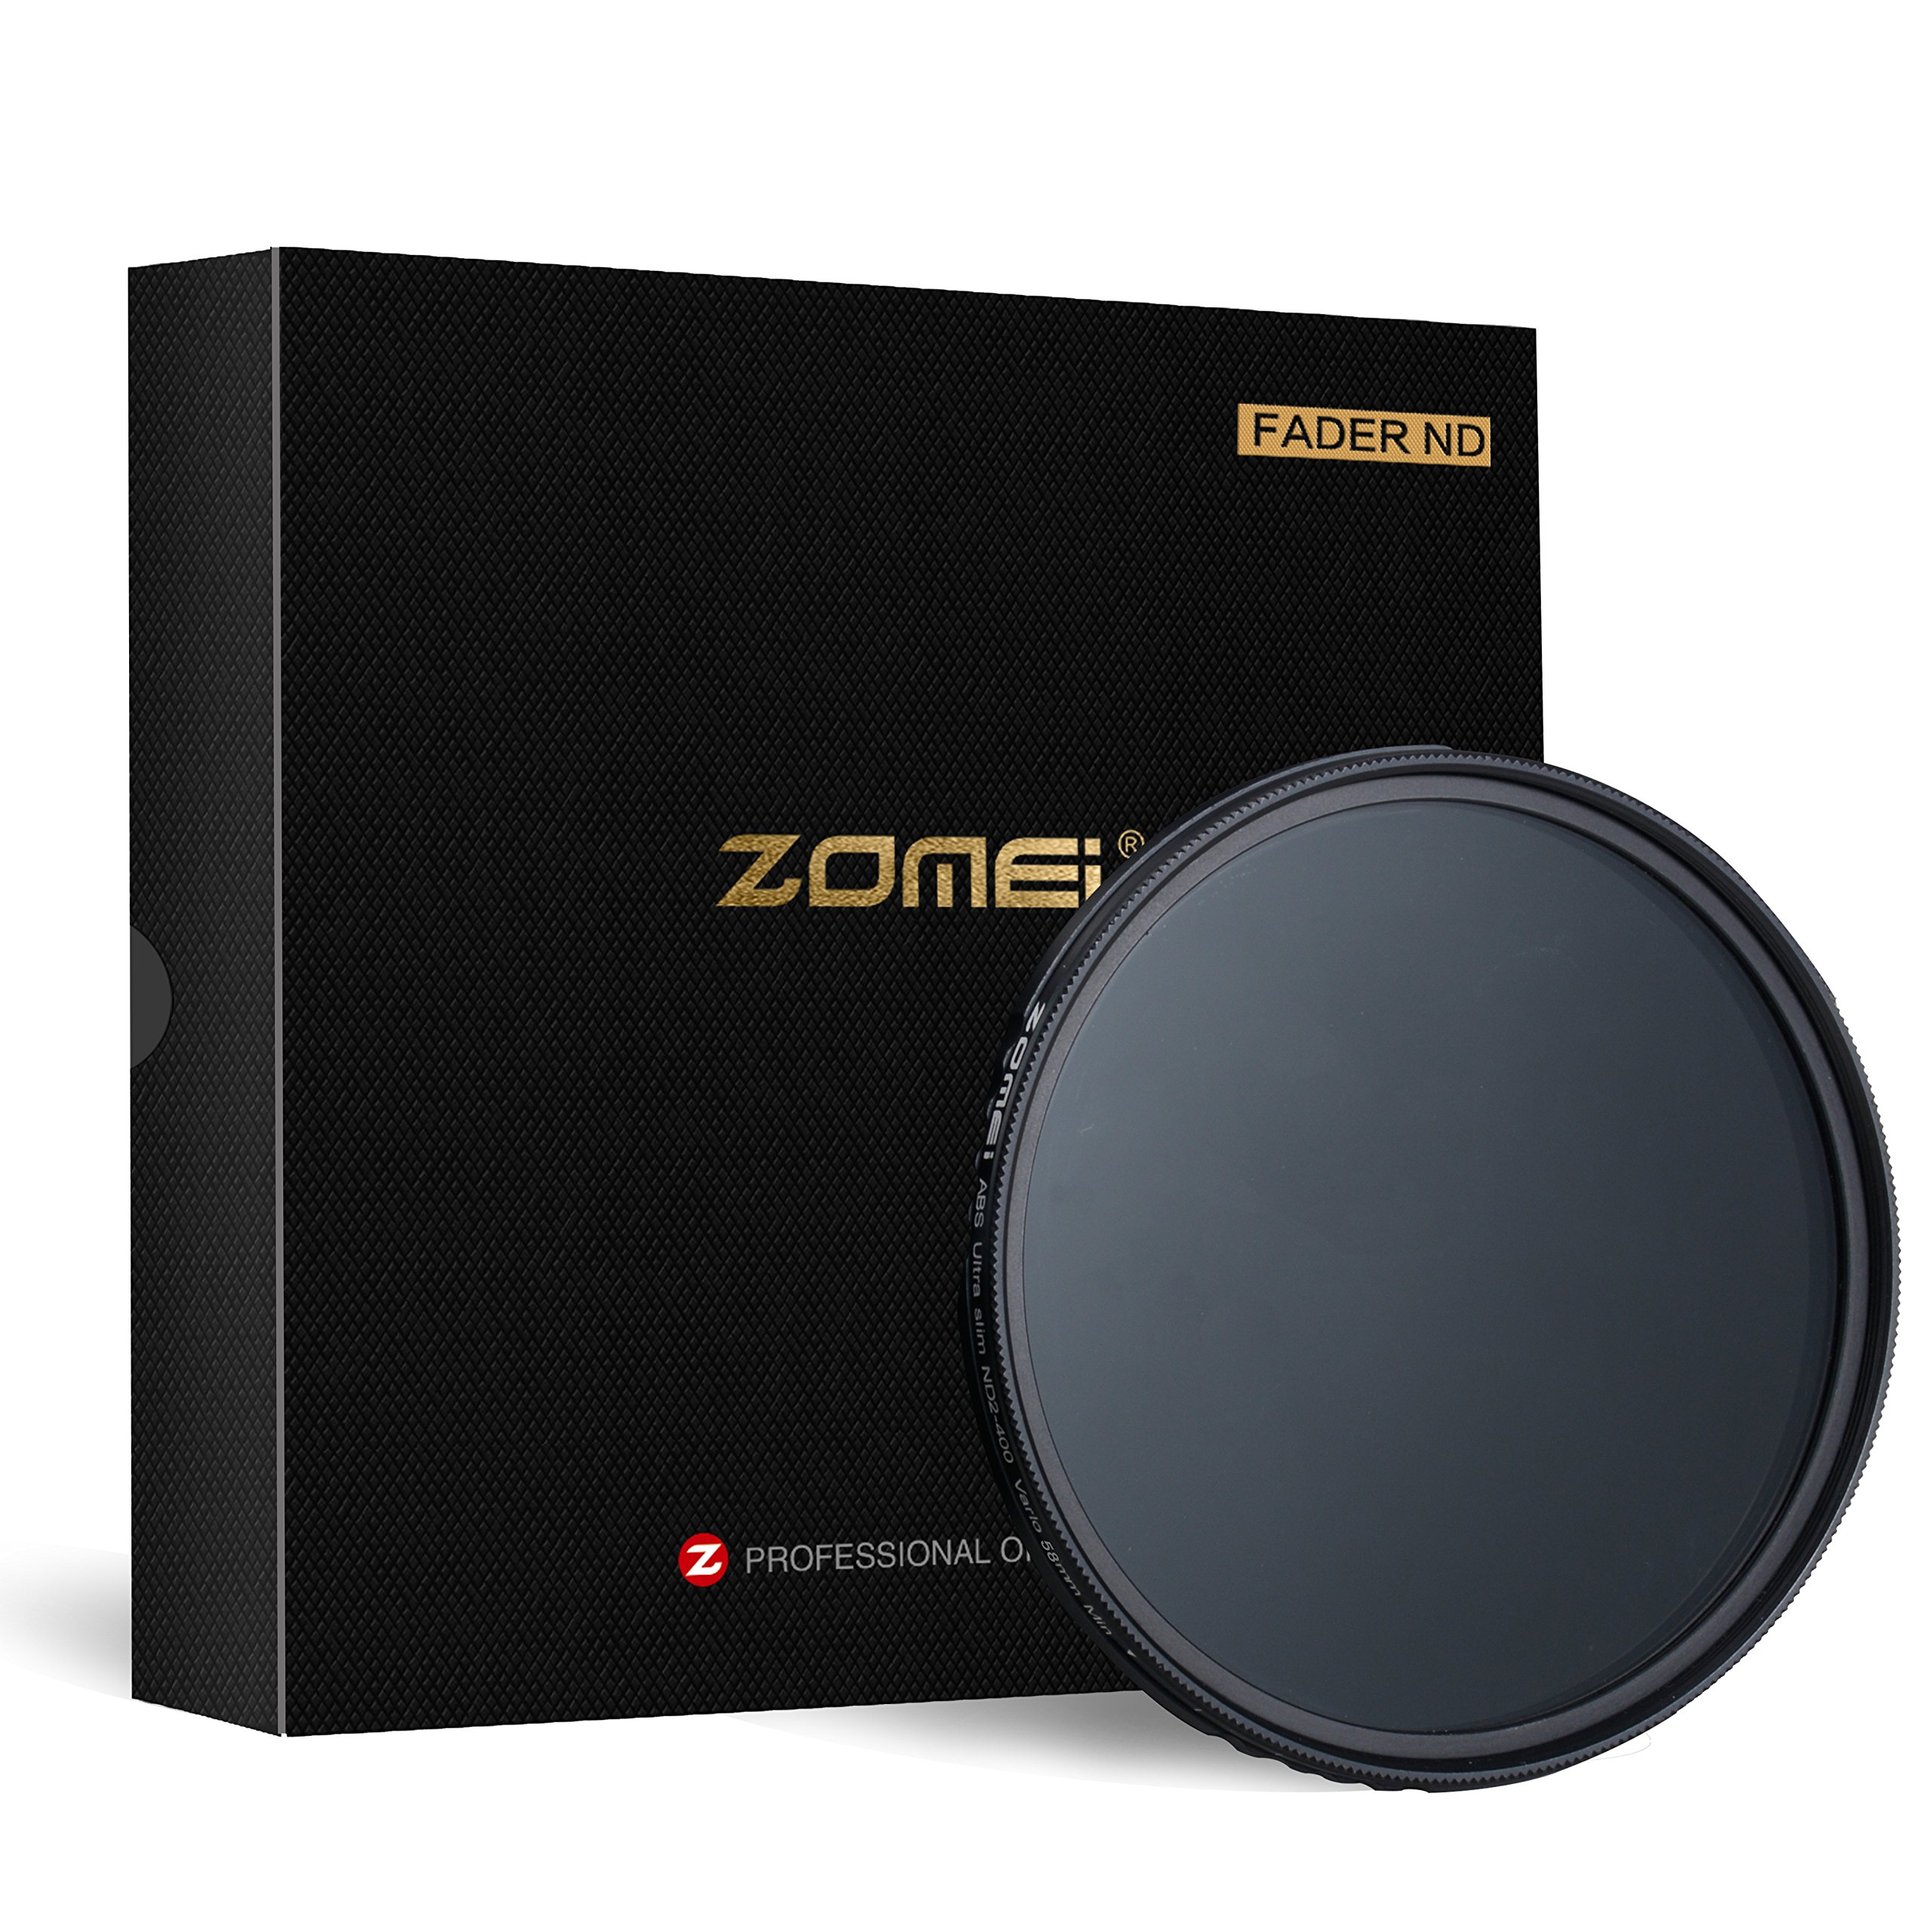 ZoMei 58mm Fader ND Variable Neutral Density Adjustable ND Filter ND2 to ND400 No X Pattern in The Middle of The Picture by ZoMei